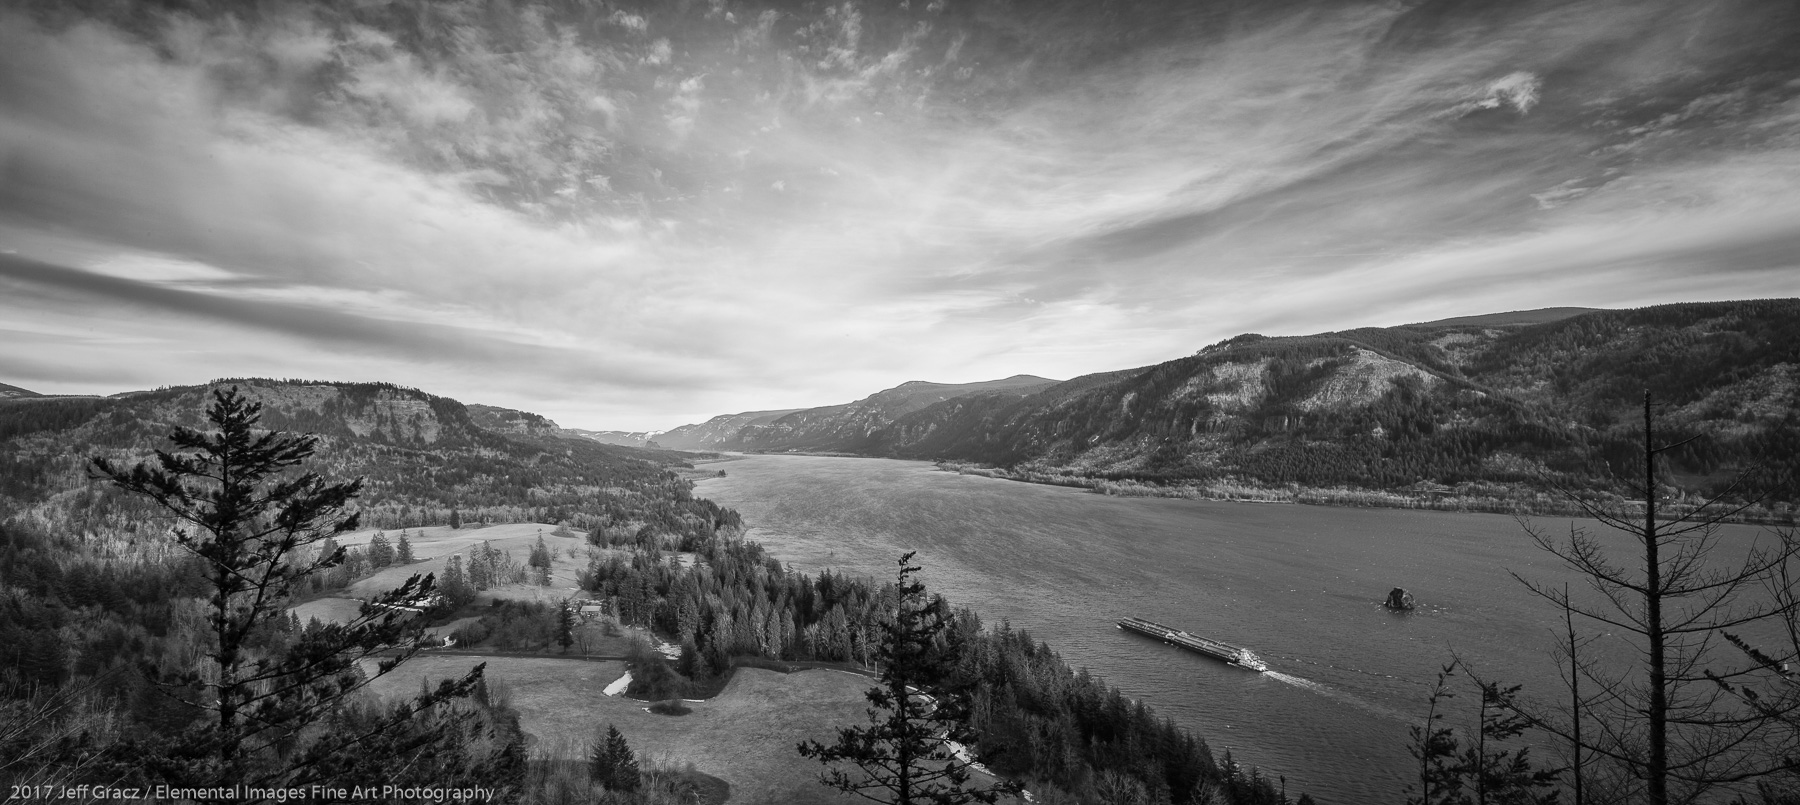 The Columbia River Gorge   Columbia River Gorge National Scenic Area   WA   USA - © 2017 Jeff Gracz / Elemental Images Fine Art Photography - All Rights Reserved Worldwide